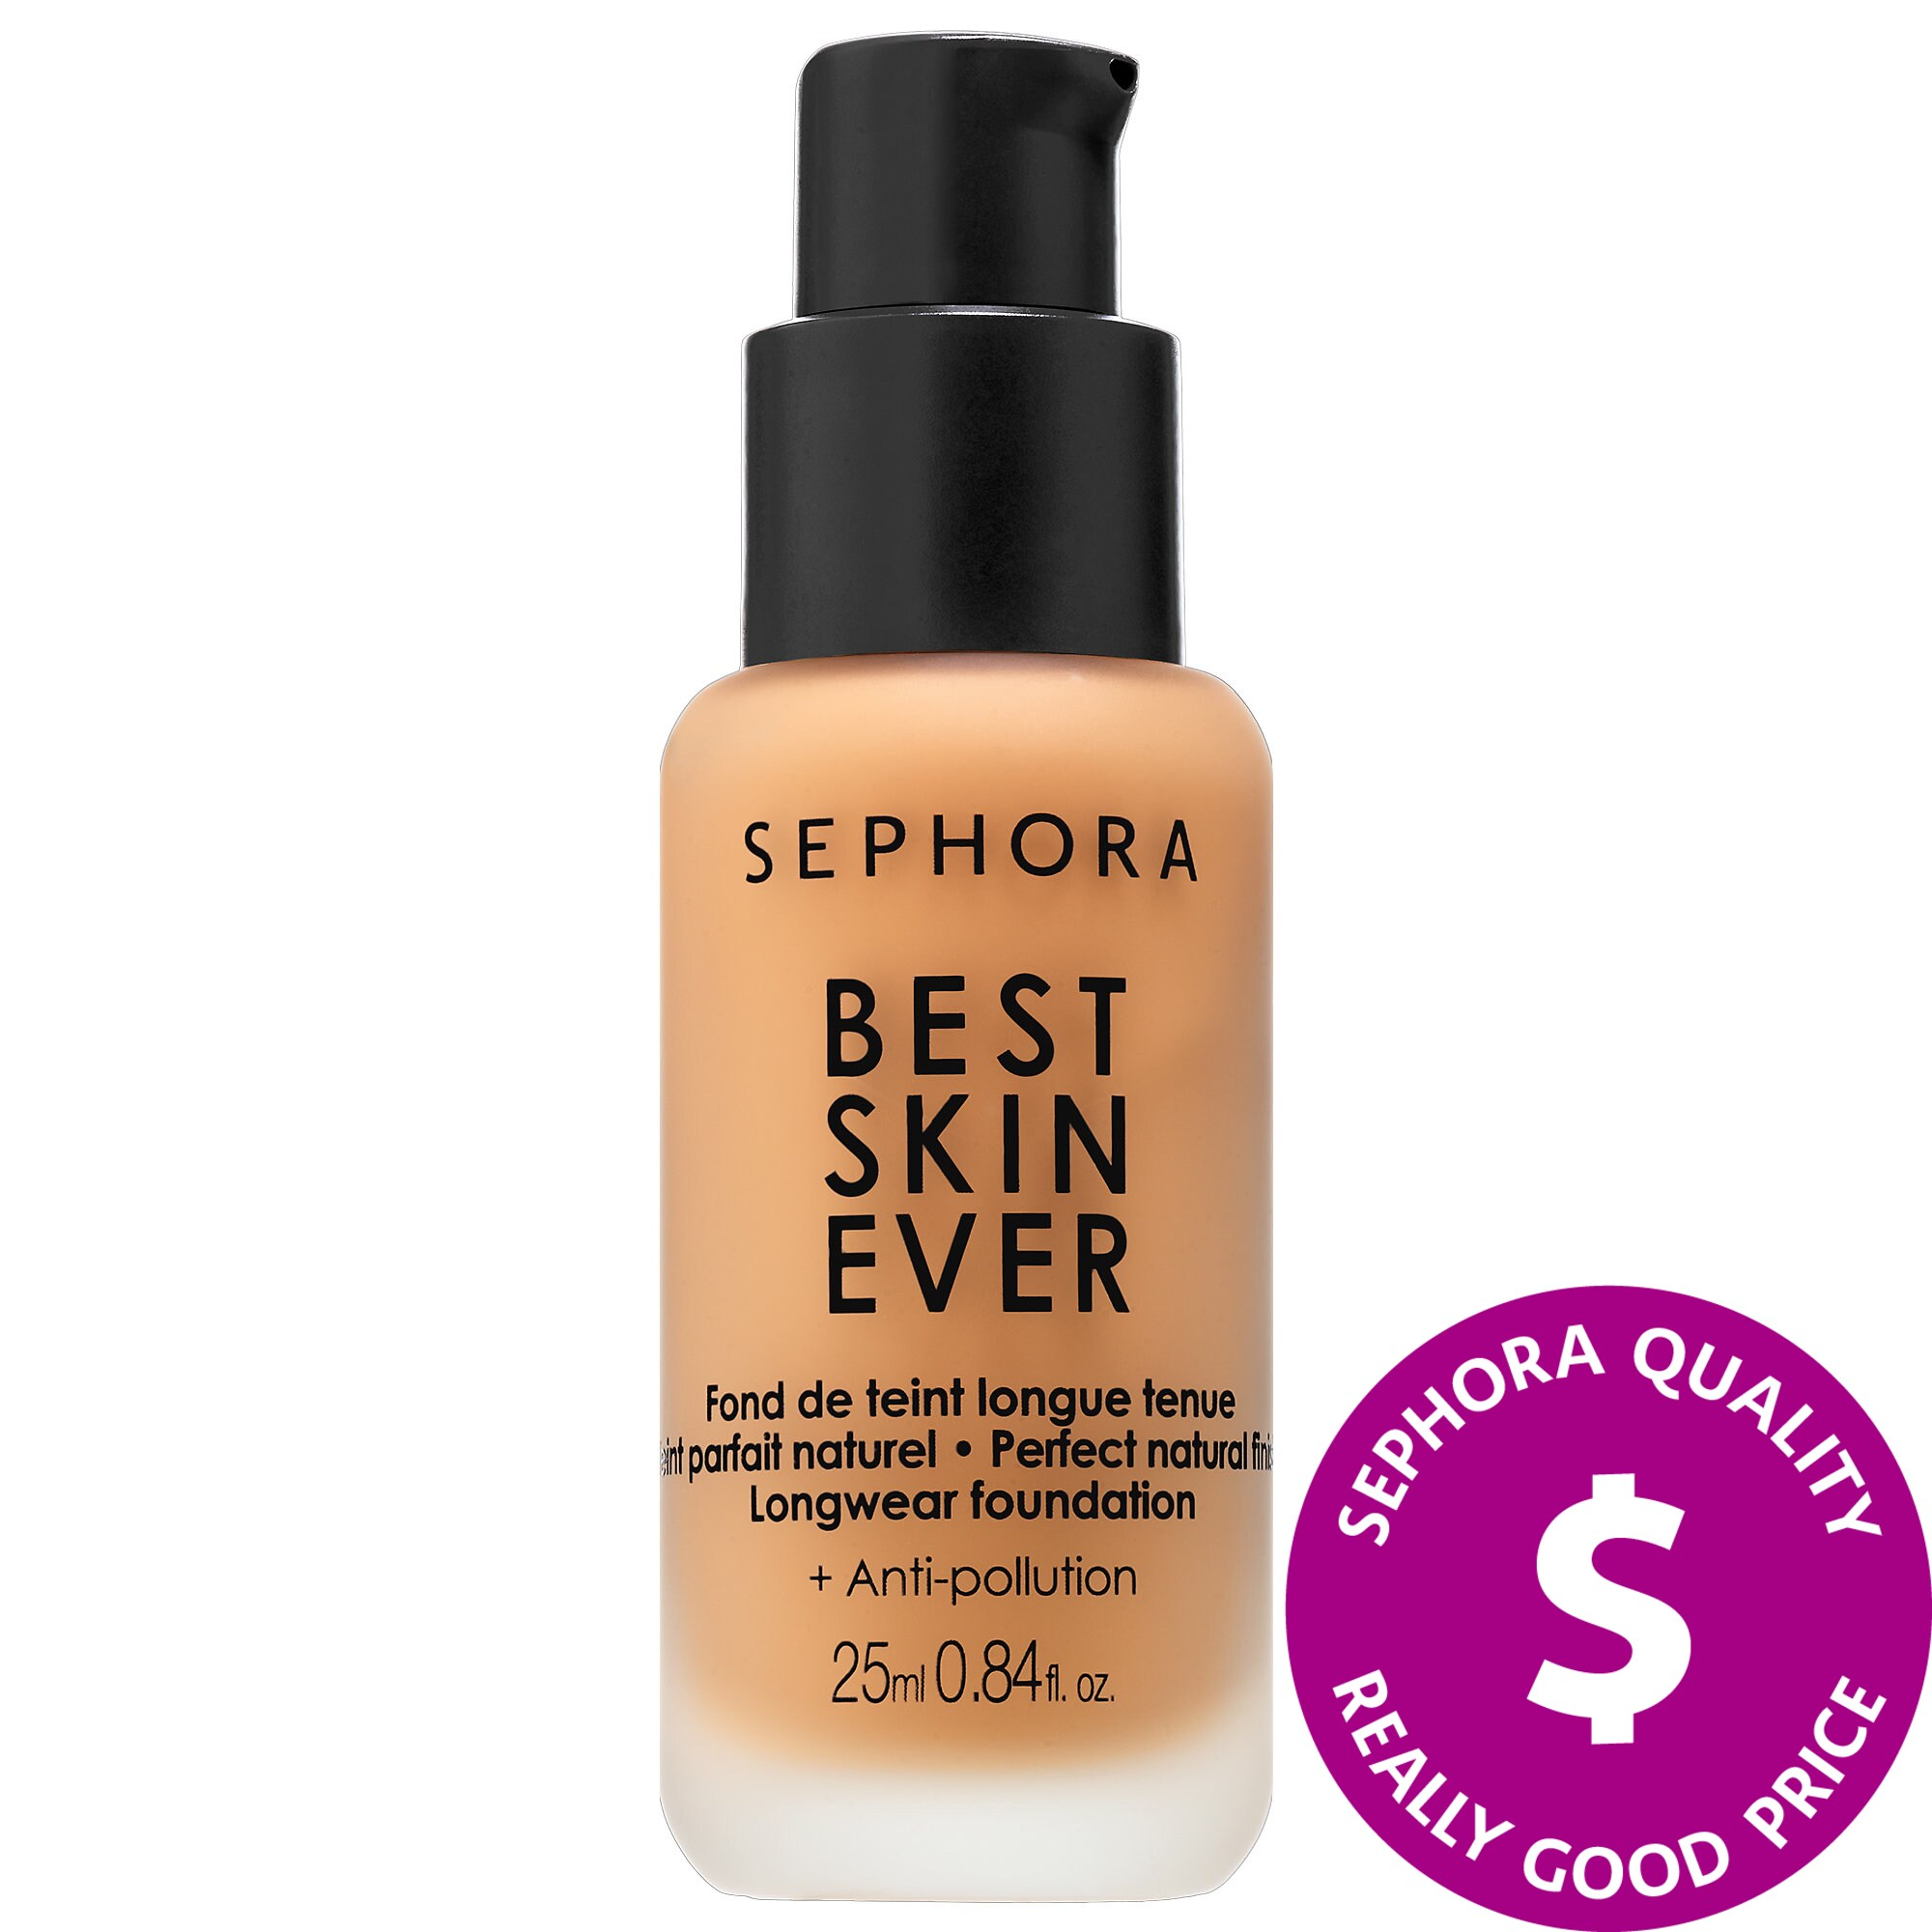 Sephora - Best Skin Ever Liquid Foundation 25.5 Y 0.84 oz/ 25 ml